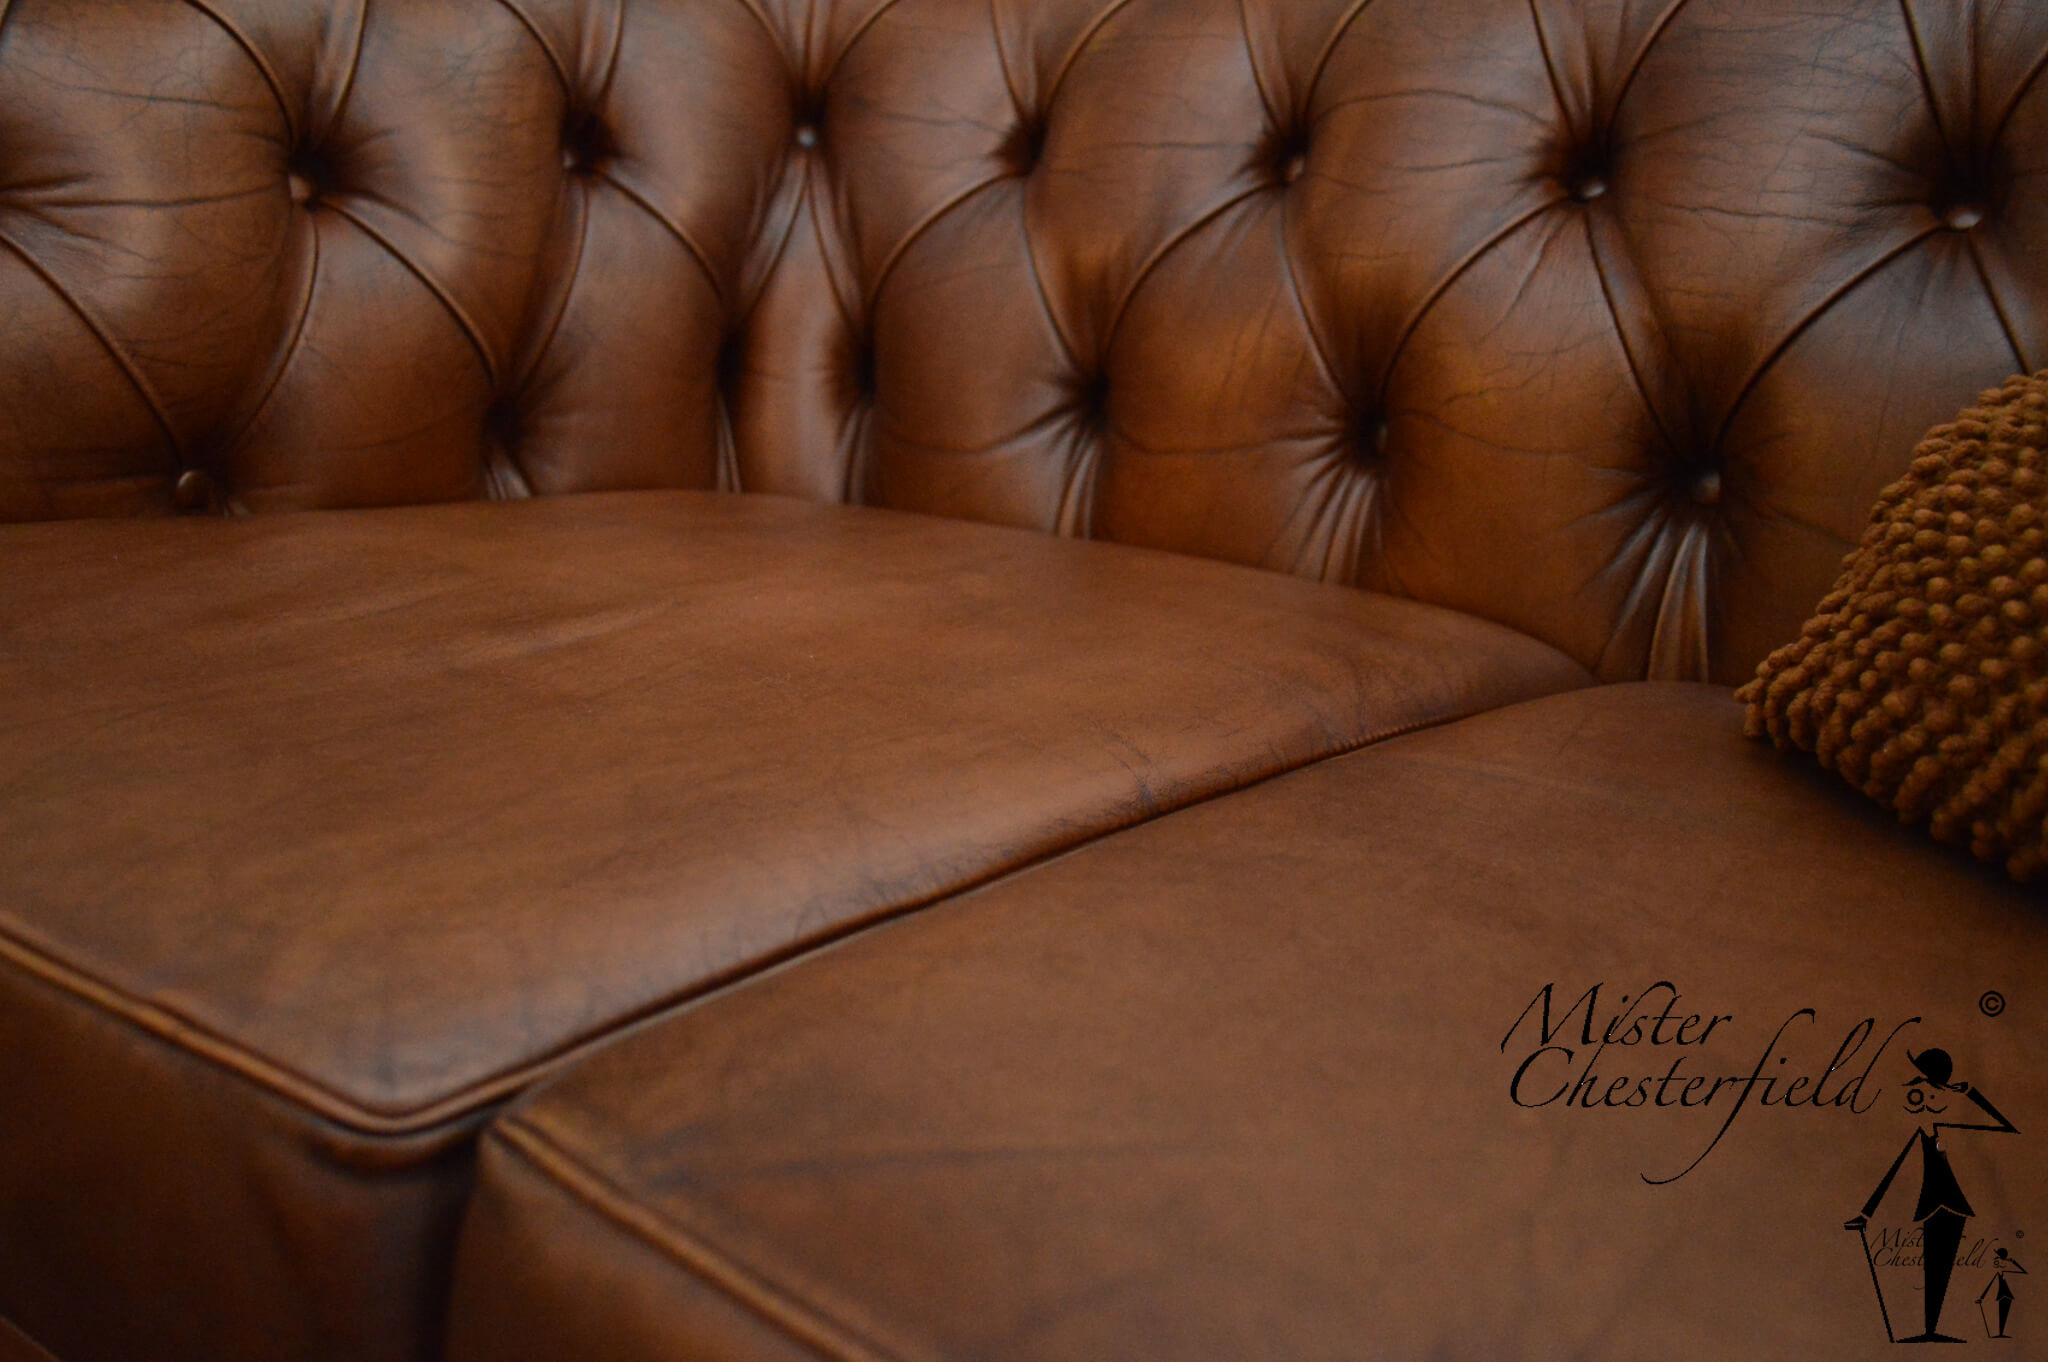 AGING-CHESTERFIELD